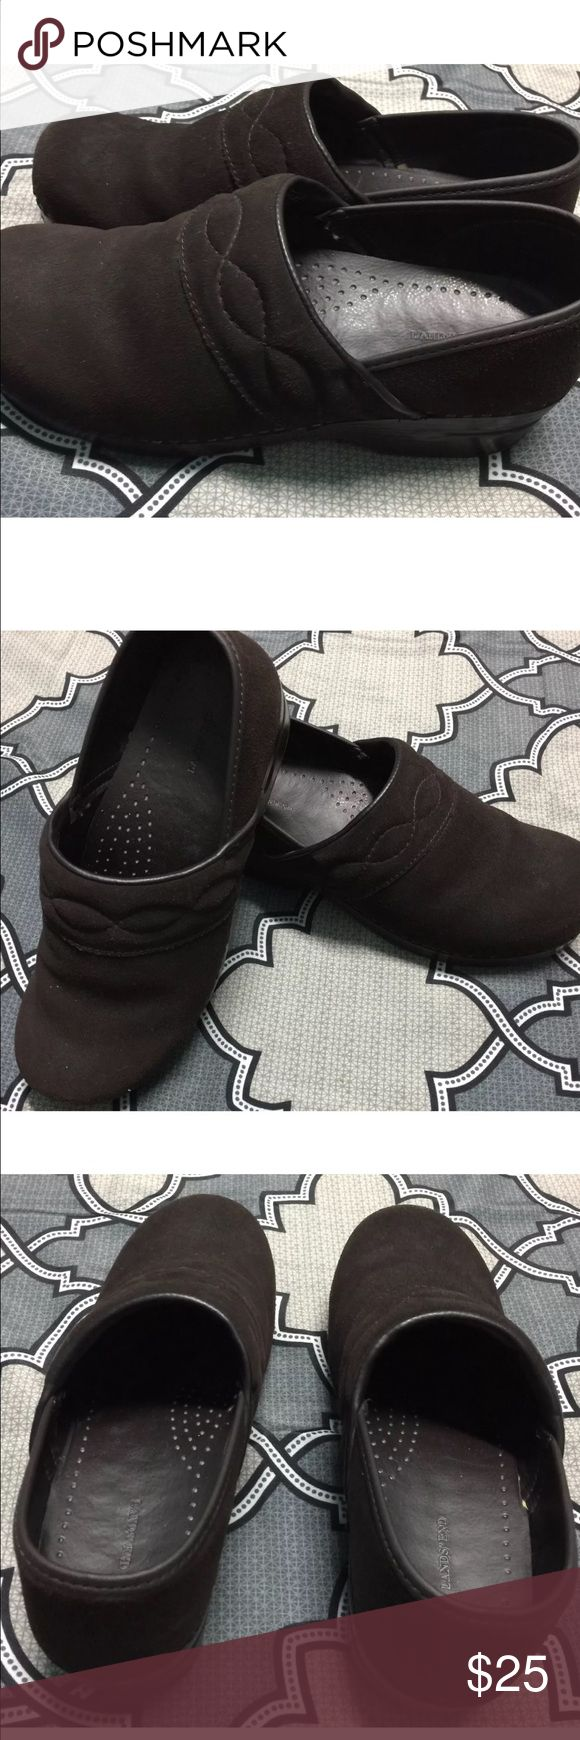 Lands End size 10 Clogs Suede Brown Slip On These women's suede clogs from lands end are a size 10 and in new never worn condition: Please see condition report. All of my items come from a smoke free home. Thanks for looking! Lands End  Shoes Mules & Clogs